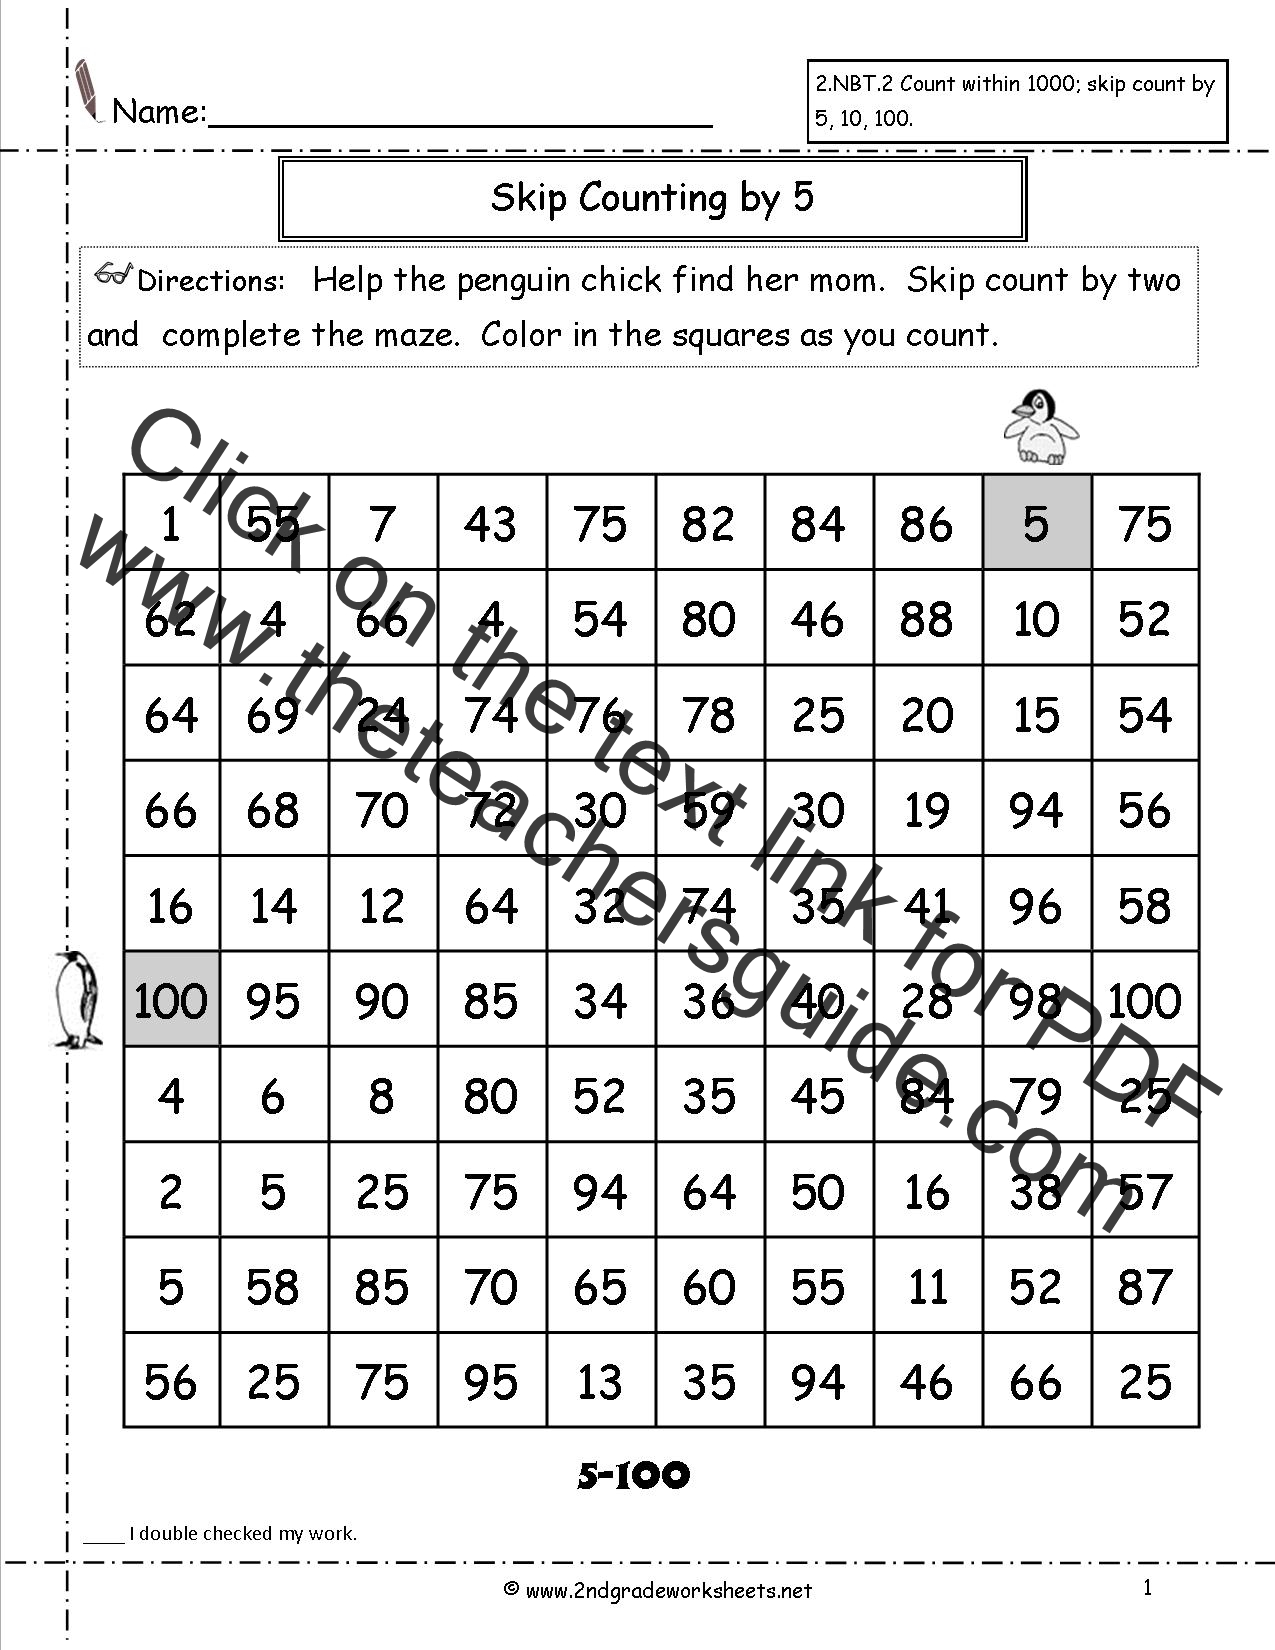 Worksheets Skip Counting By 5 Worksheets free skip counting worksheets by 5 maze